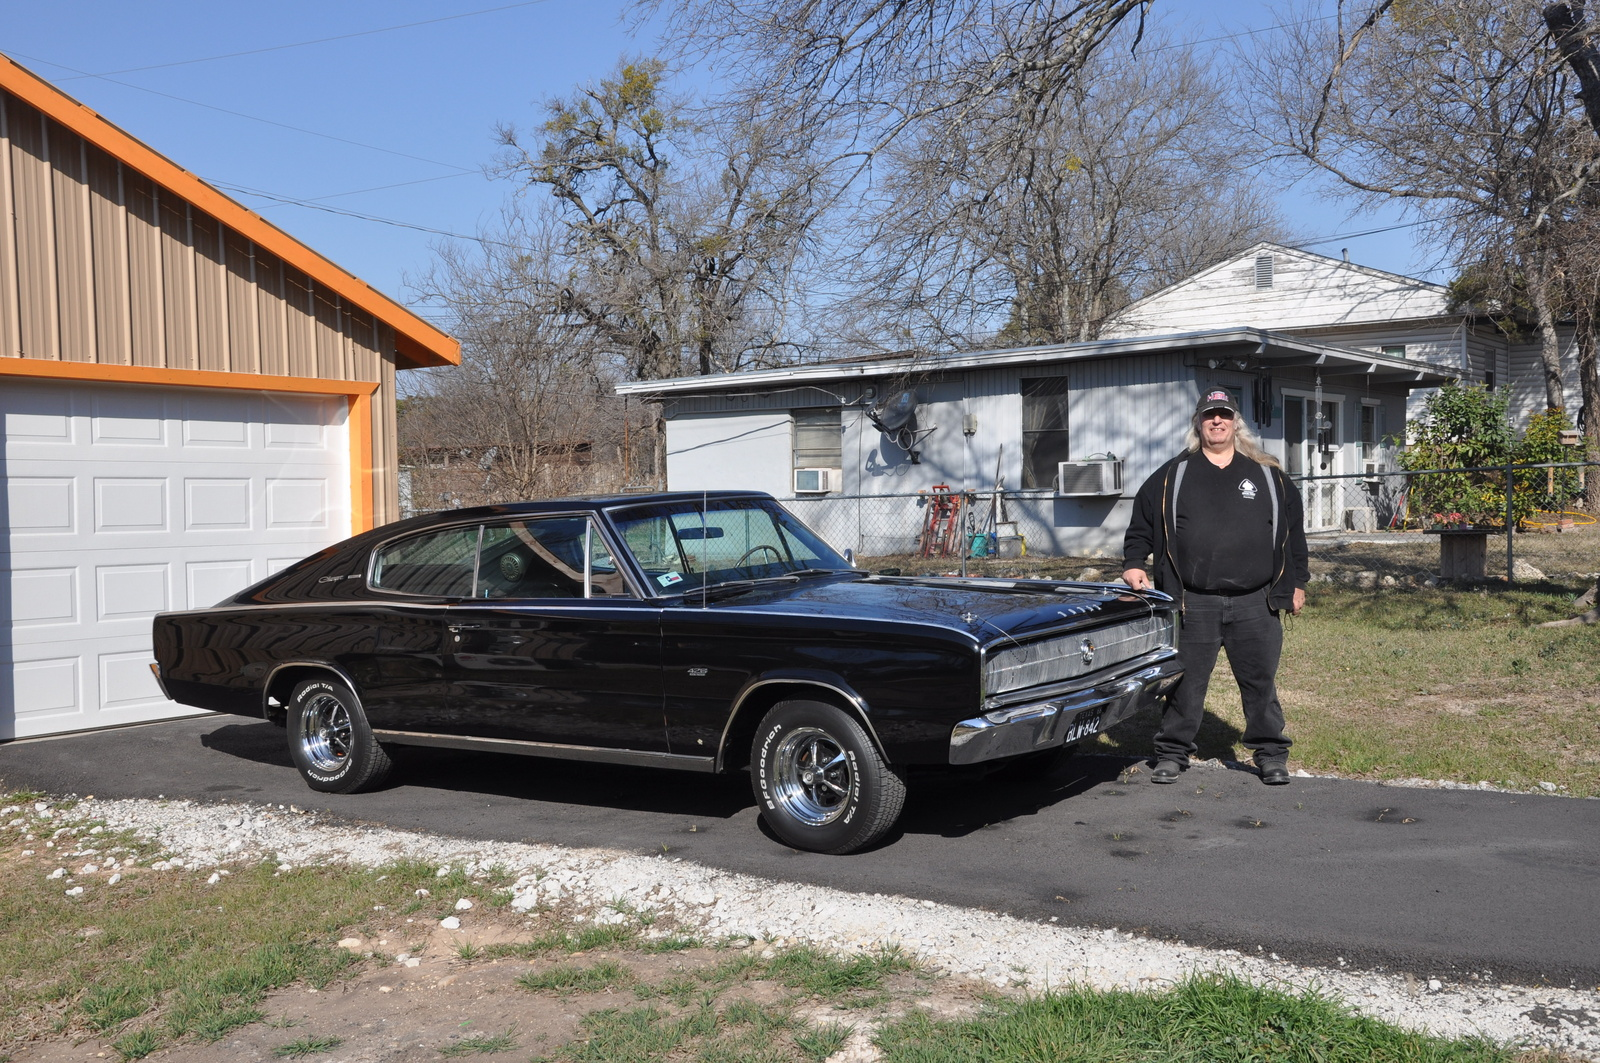 1969 Dodge Dart Pictures C6567 pi35755202 together with A 1959 Dodge Challenger moreover 1968 Dodge Coro  Pictures C6546 pi13605902 additionally 1960 DODGE POLARA 2 DOOR HARDTOP 60692 also Chrysler C. on 1967 dodge power wagon